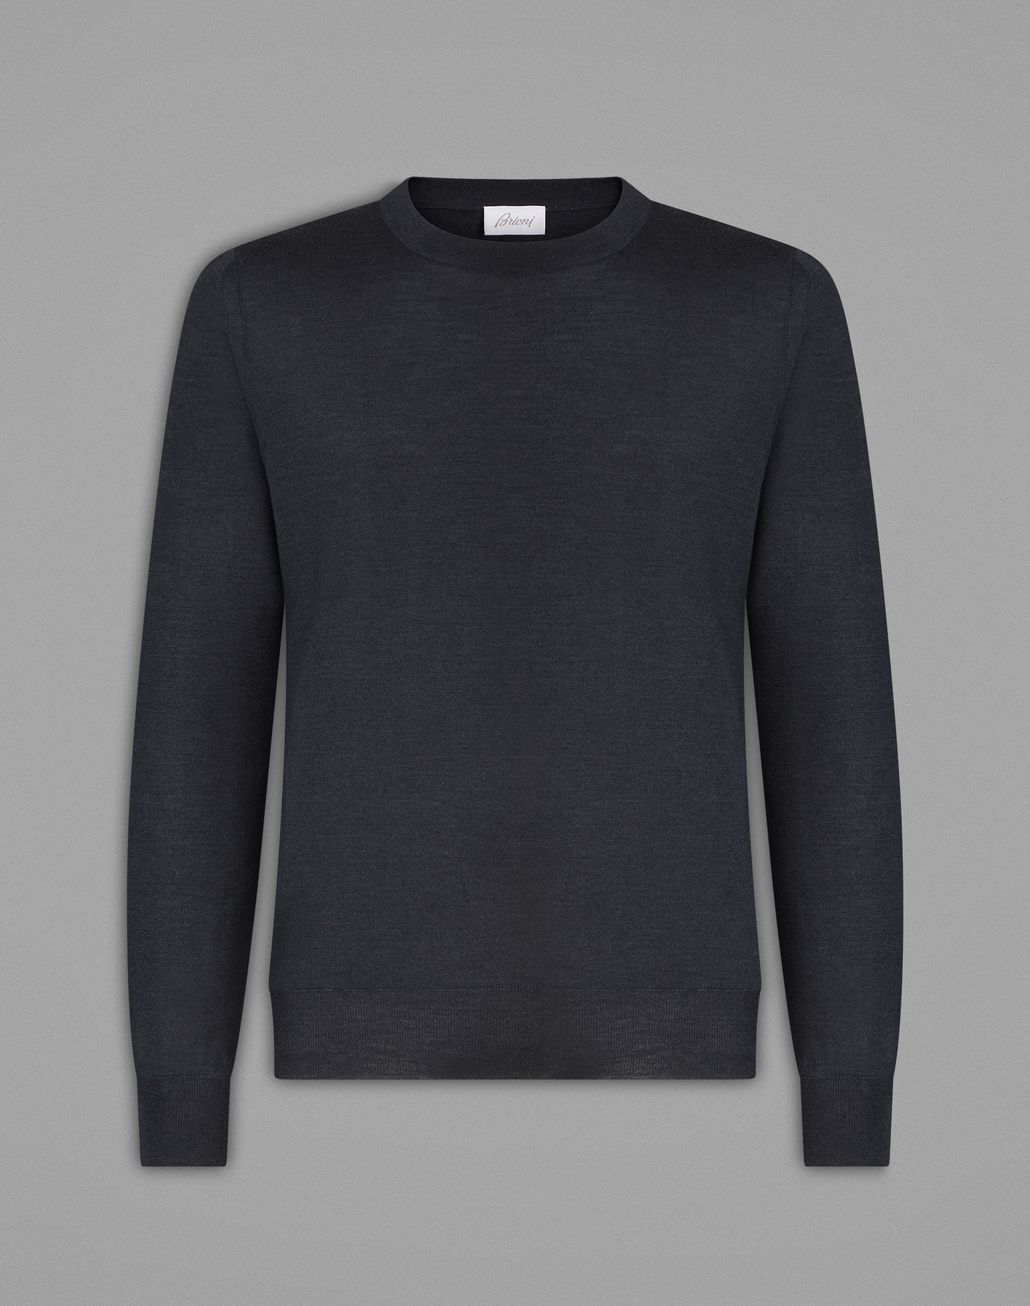 BRIONI Anthracite Grey Crew-Neck Sweater Knitwear Man f